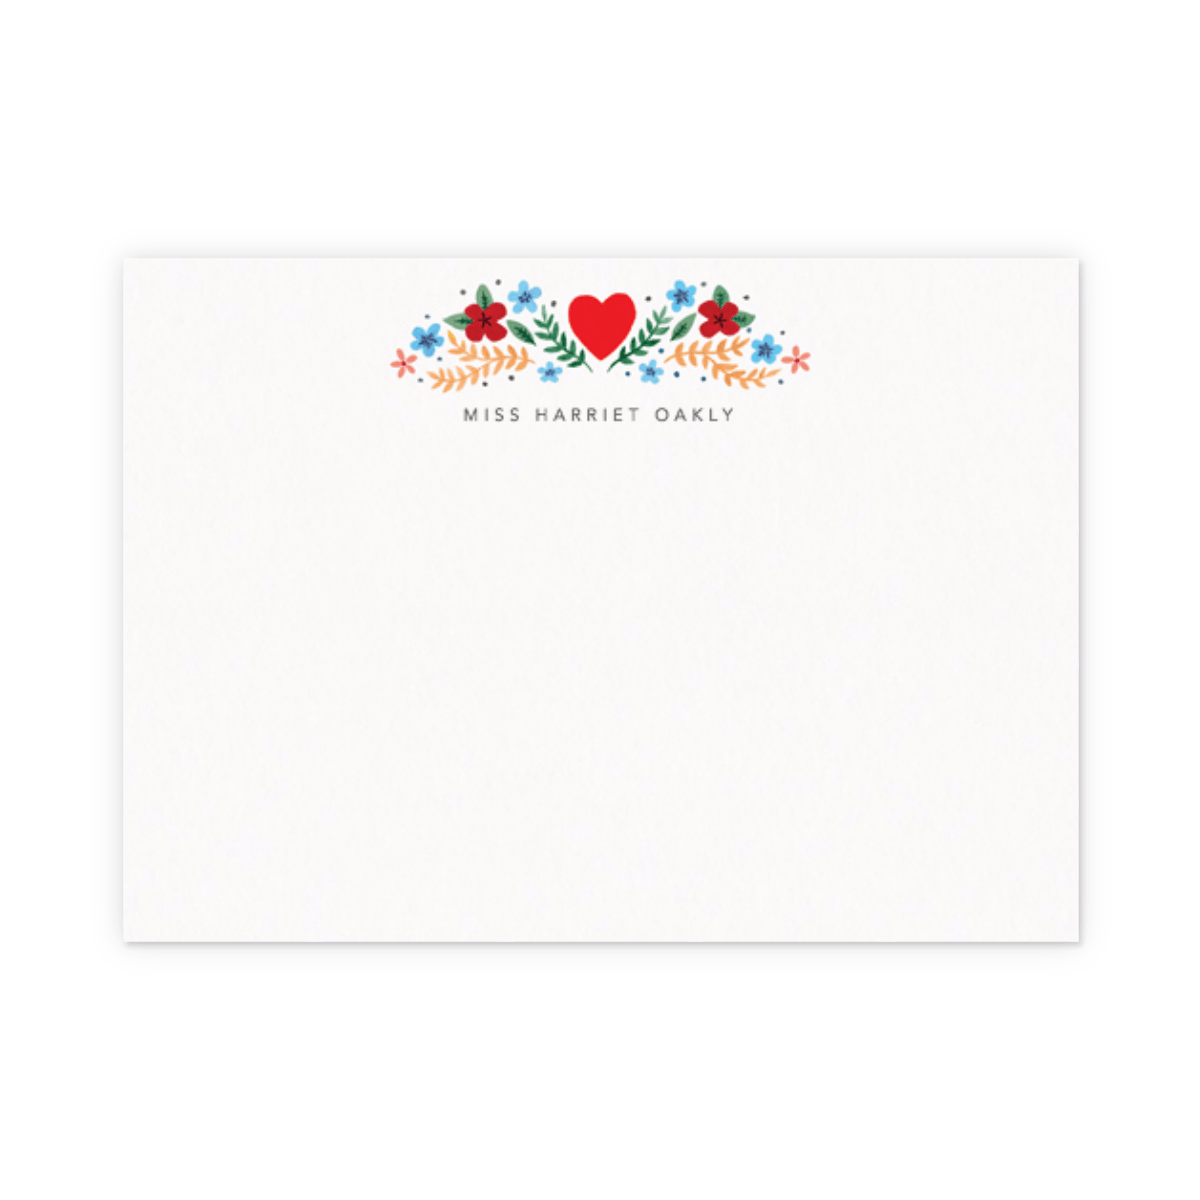 Https%3a%2f%2fwww.papier.com%2fproduct image%2f7881%2f10%2ffolk heart floral 1944 front 1551217260.png?ixlib=rb 1.1